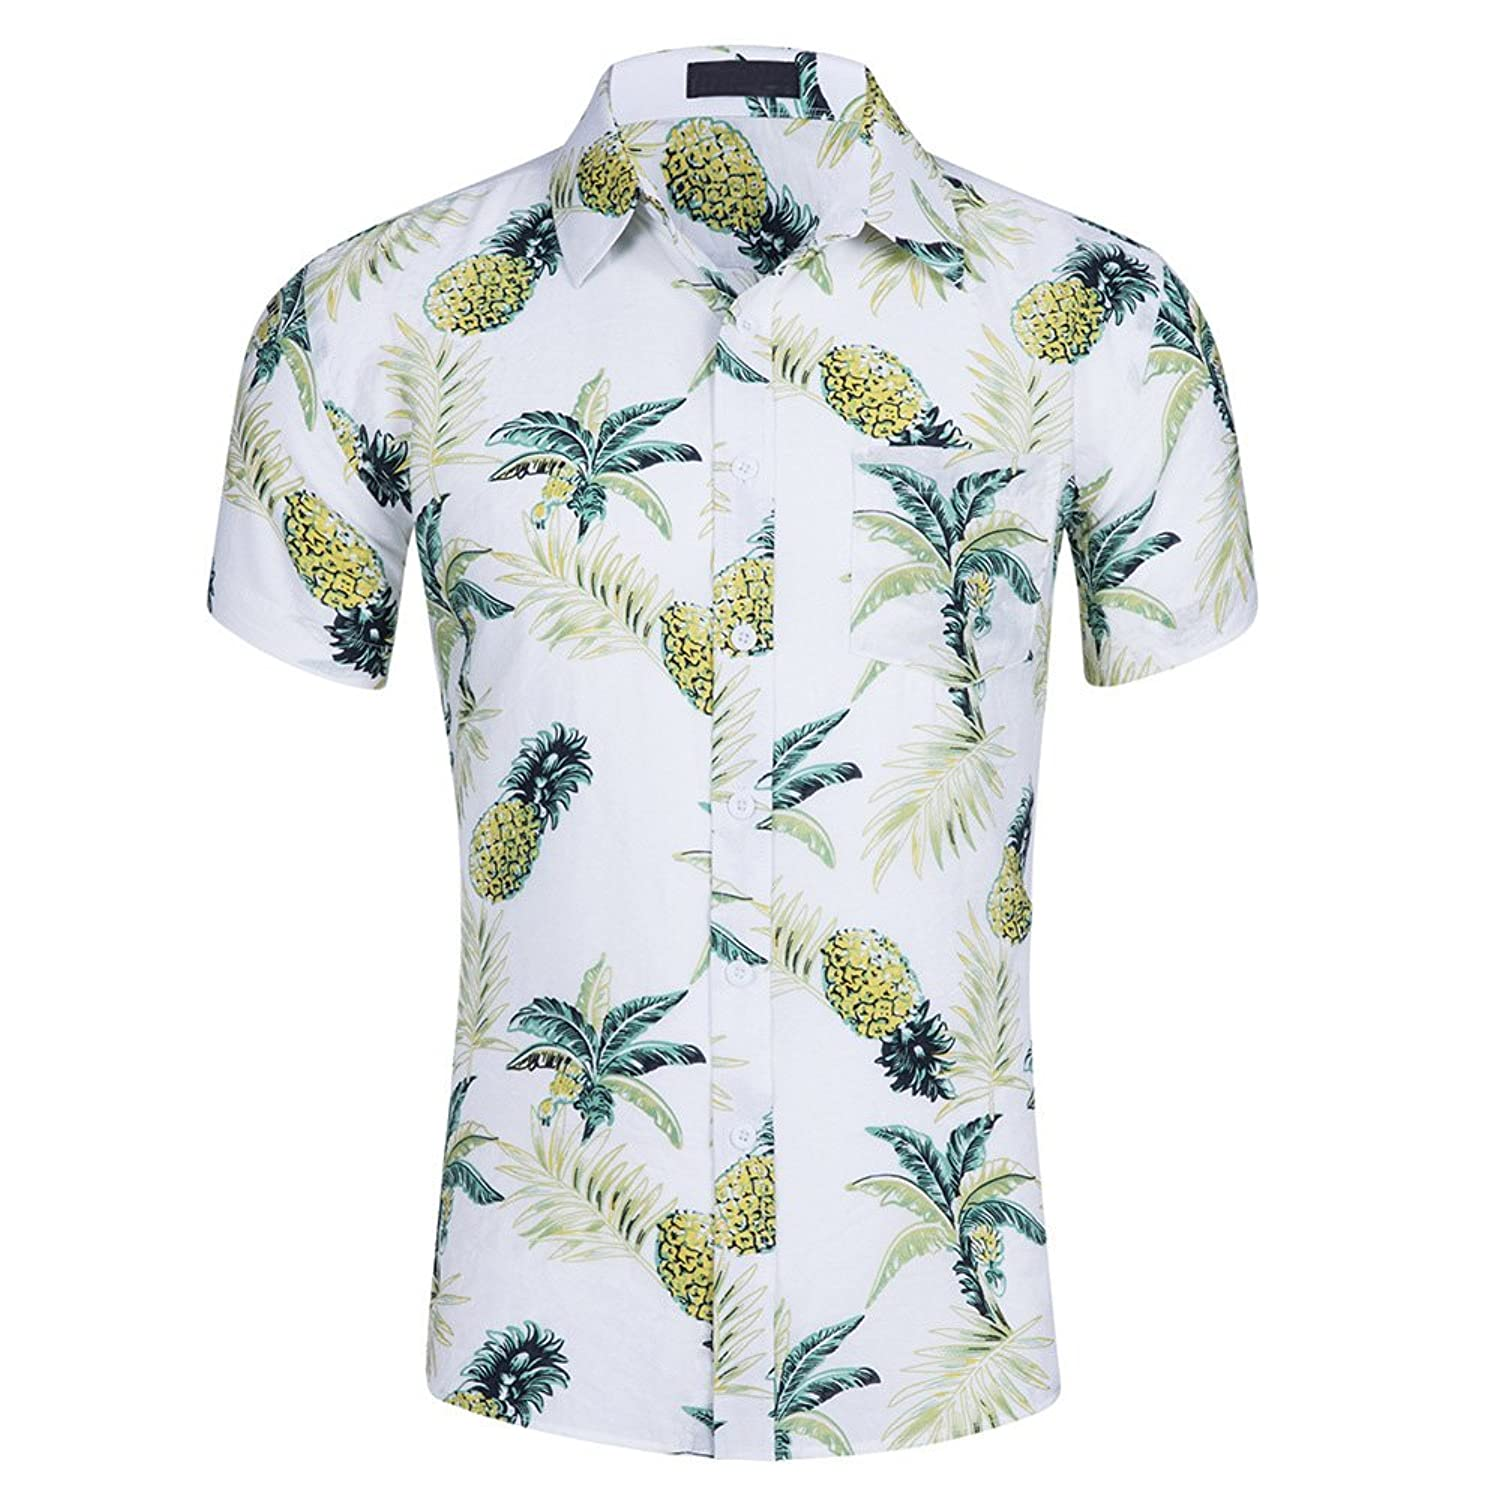 48f6bffa Special style:Pineapple Printed Aloha Hawaiian Shirt,SOFT,  Comfortable,Fashion,Good for your travel, Look Awesome In Colder Days,You  Just Wear it with a ...